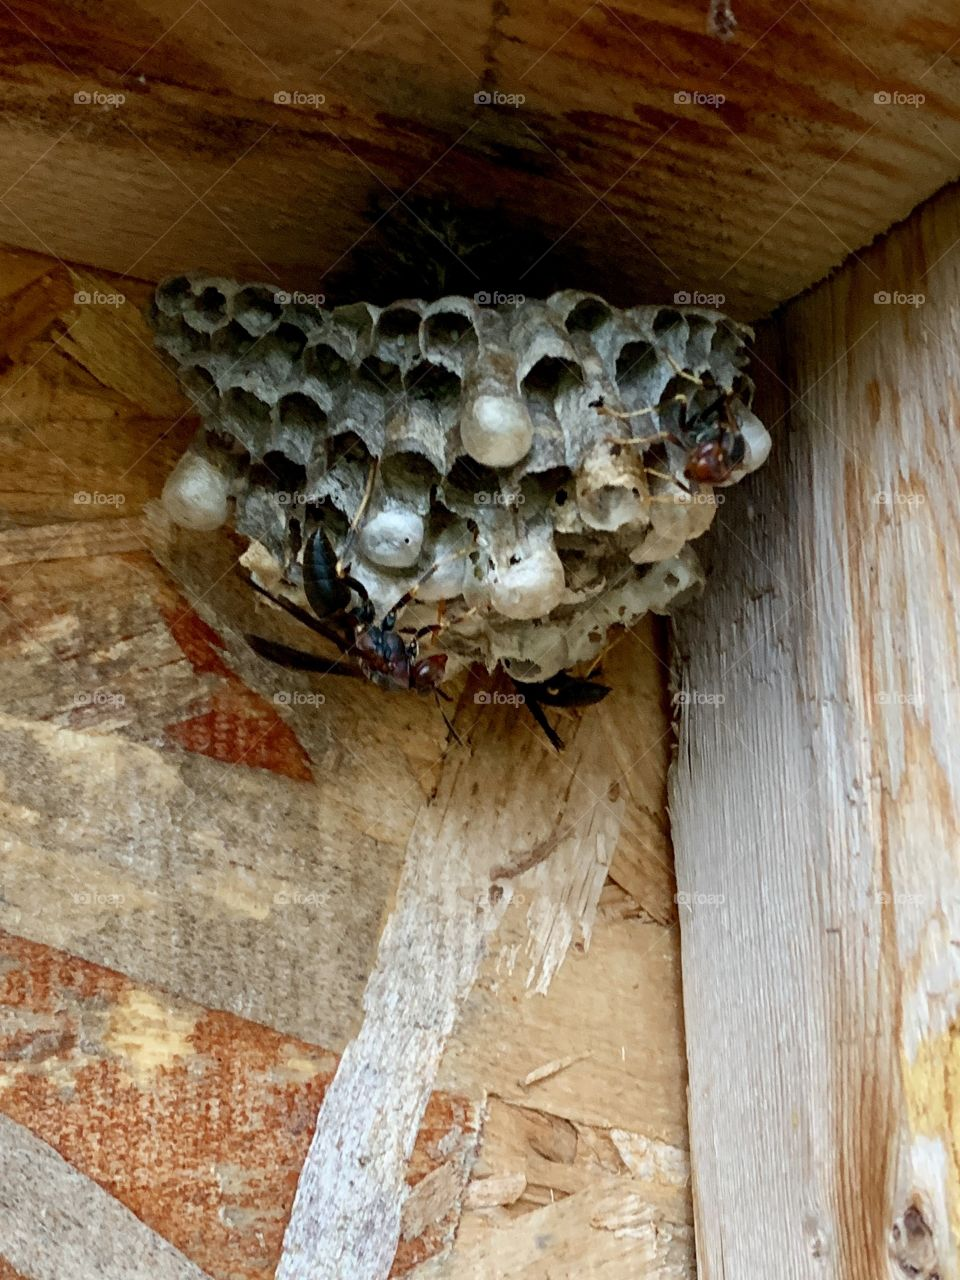 Wasps and nest in the corner of a wooden structure